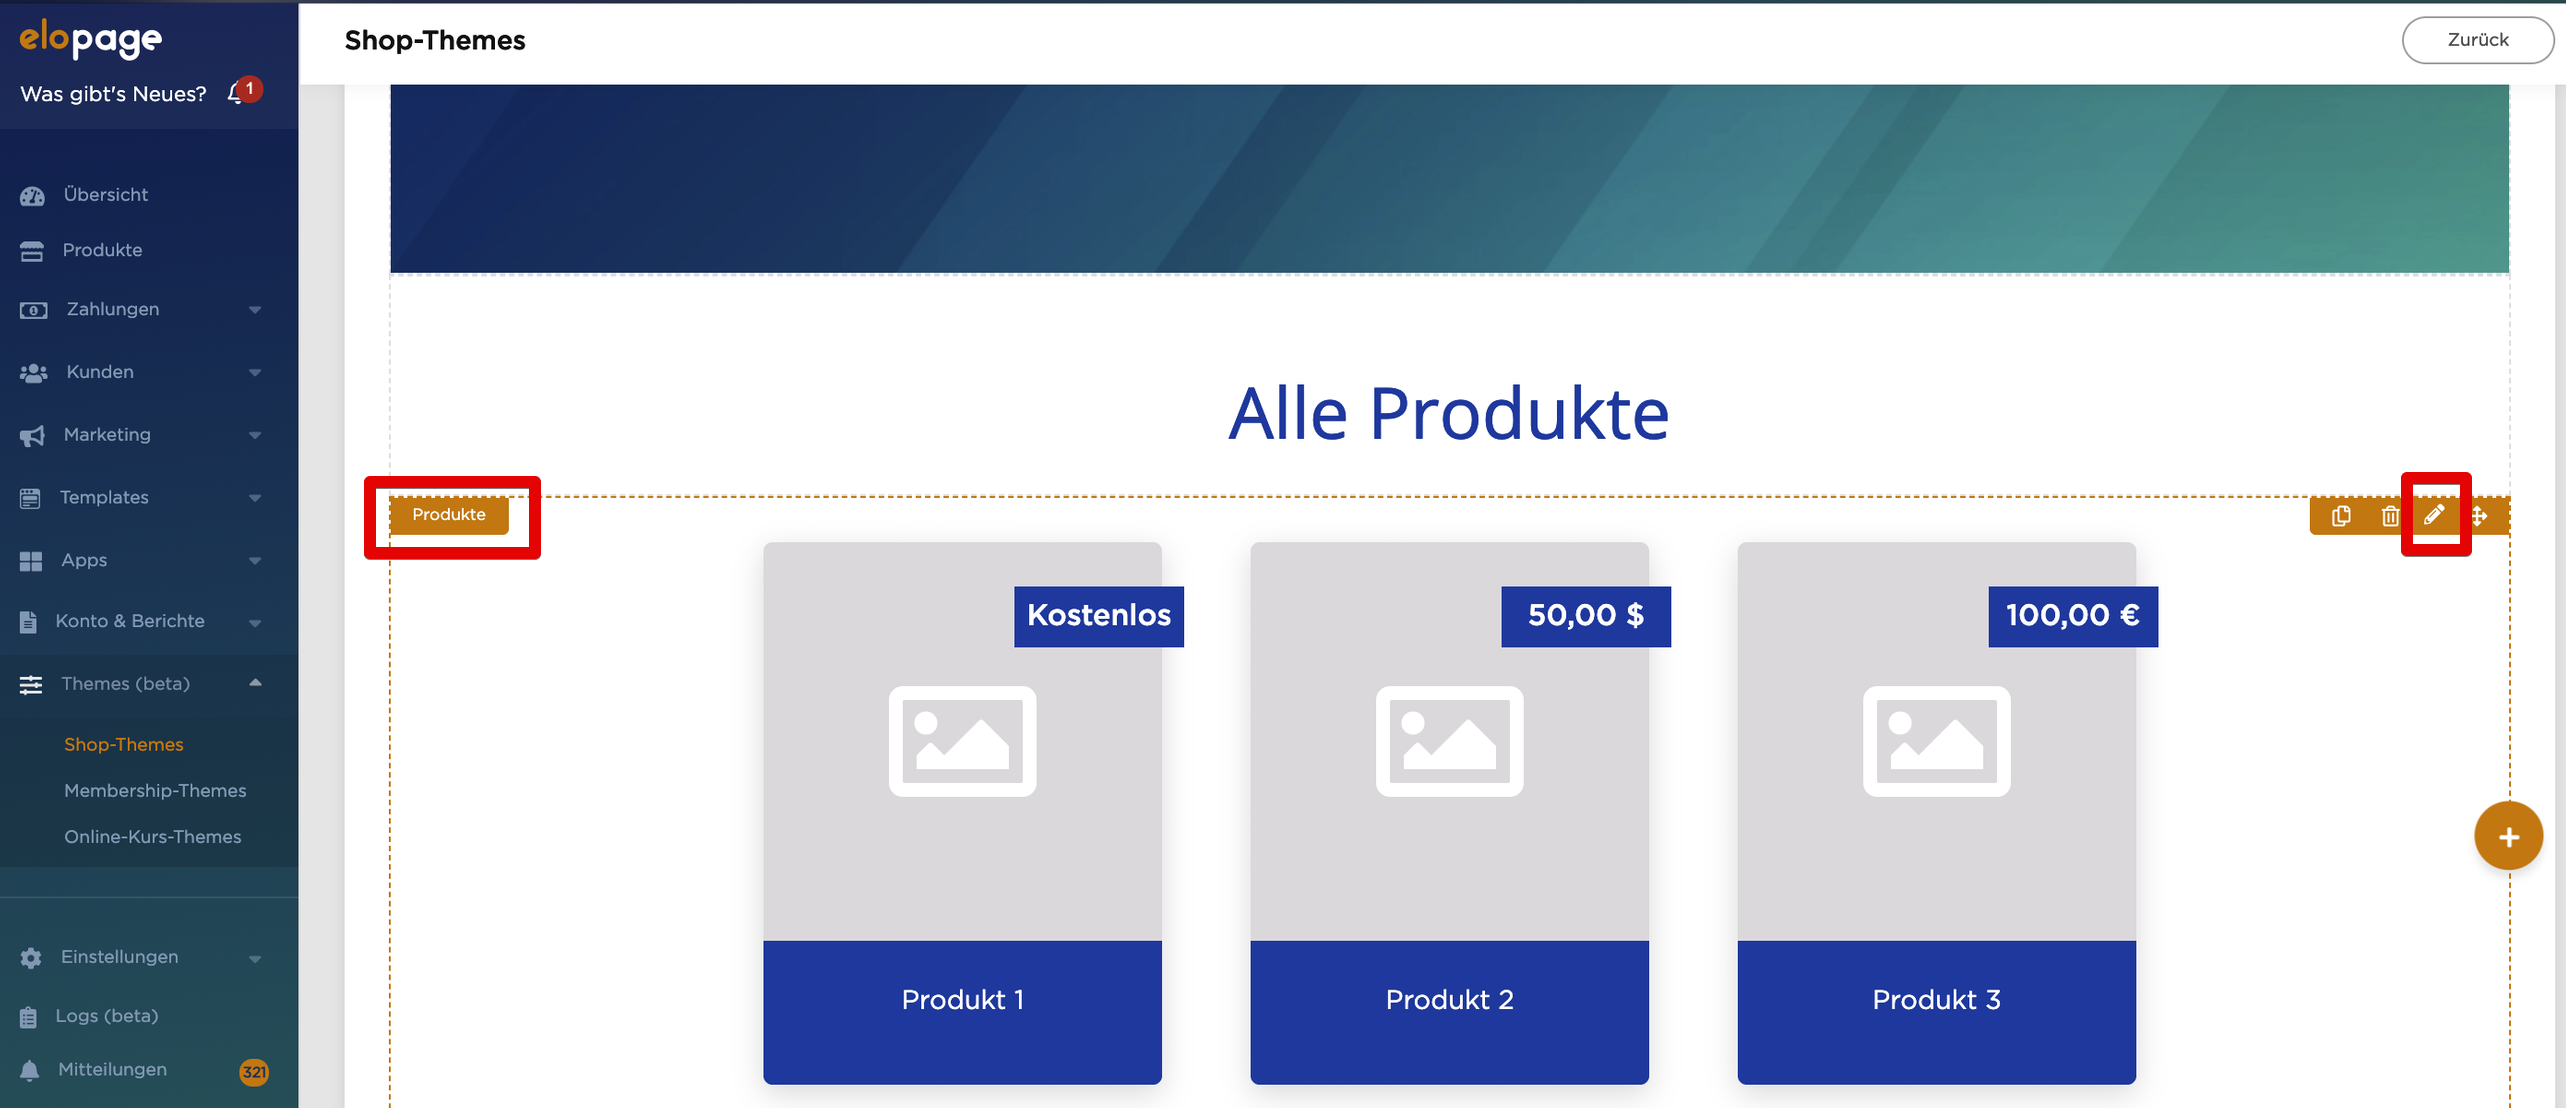 Alle_Produkte_-_Shop-Theme.png